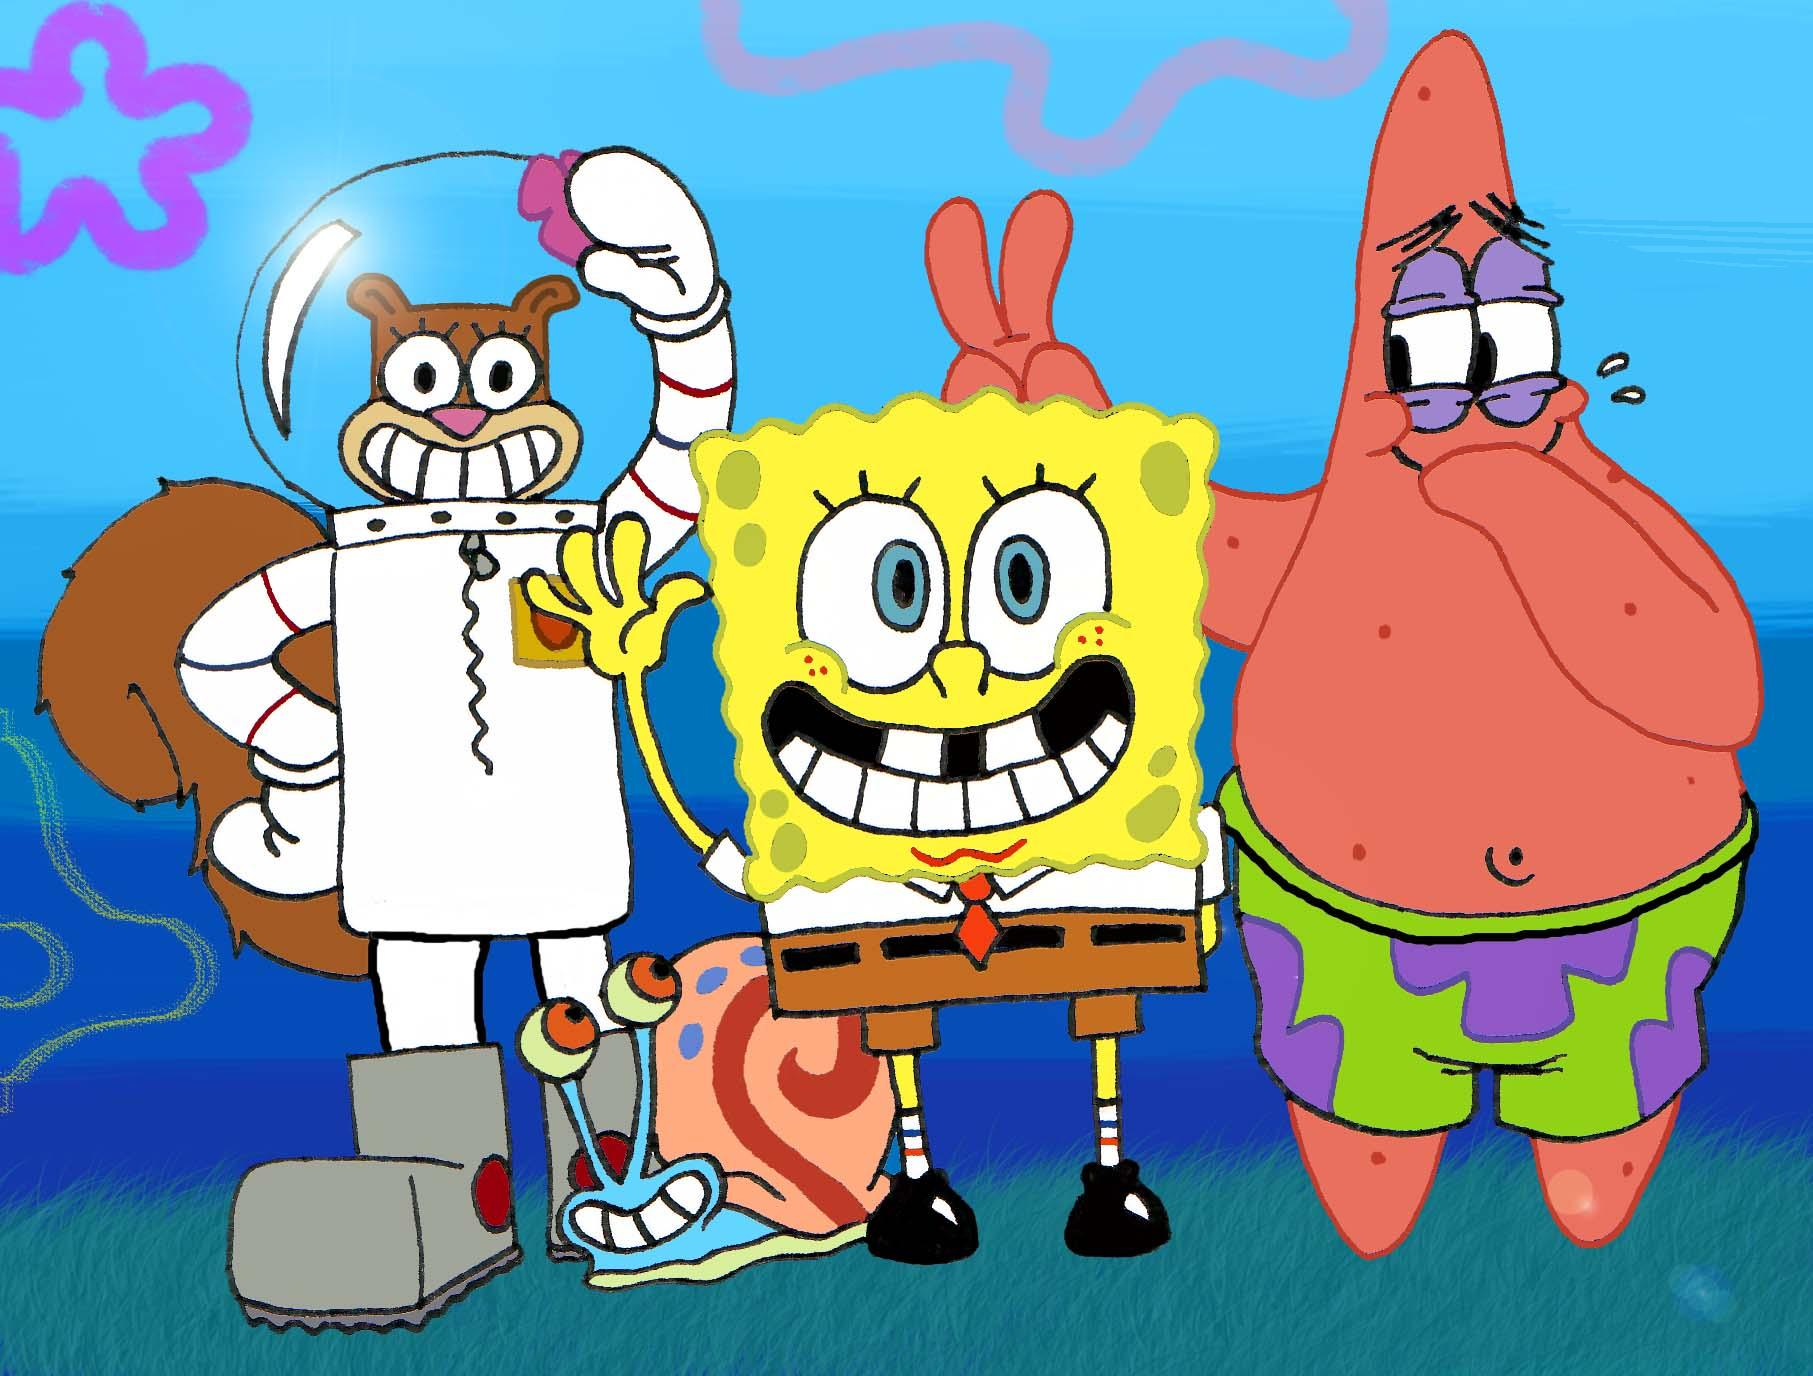 Spongebob Squarepants Characters Spongebob And Patrick And